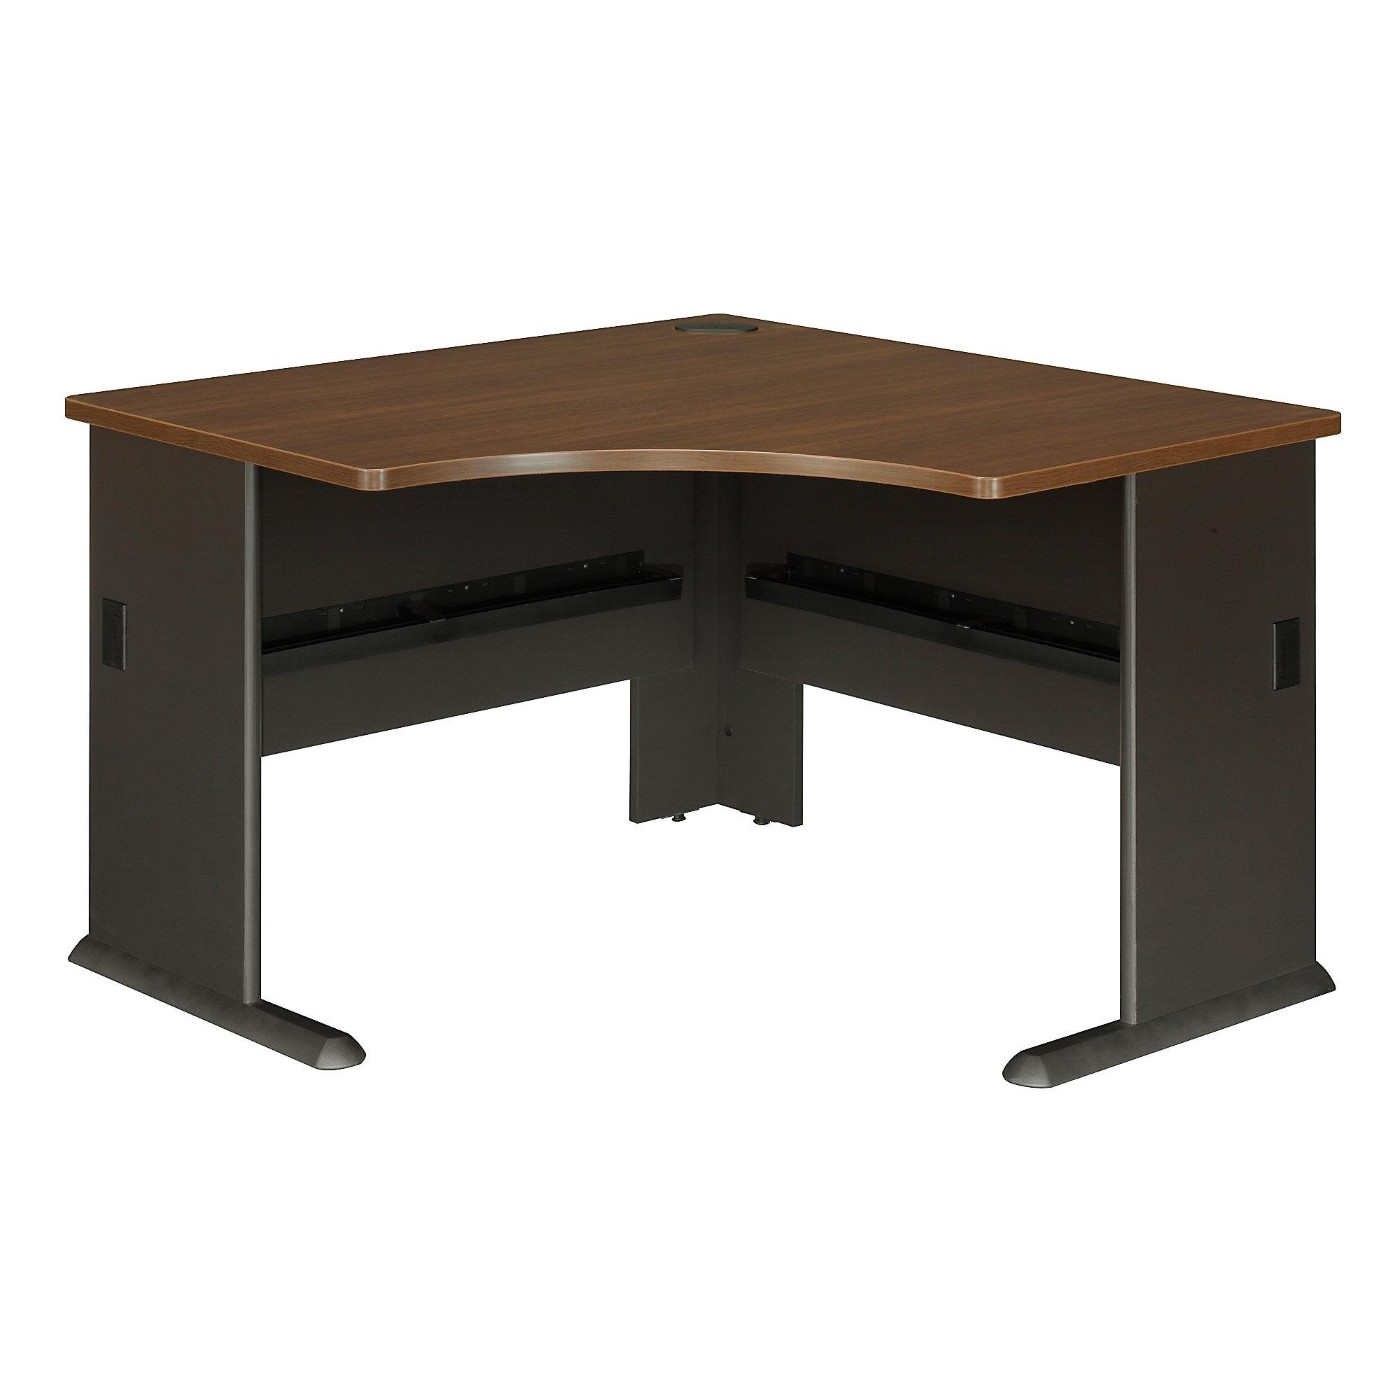 <font color=#c60><b>BUSH BUSINESS FURNITURE SERIES A 48W CORNER DESK. FREE SHIPPING</font></b>